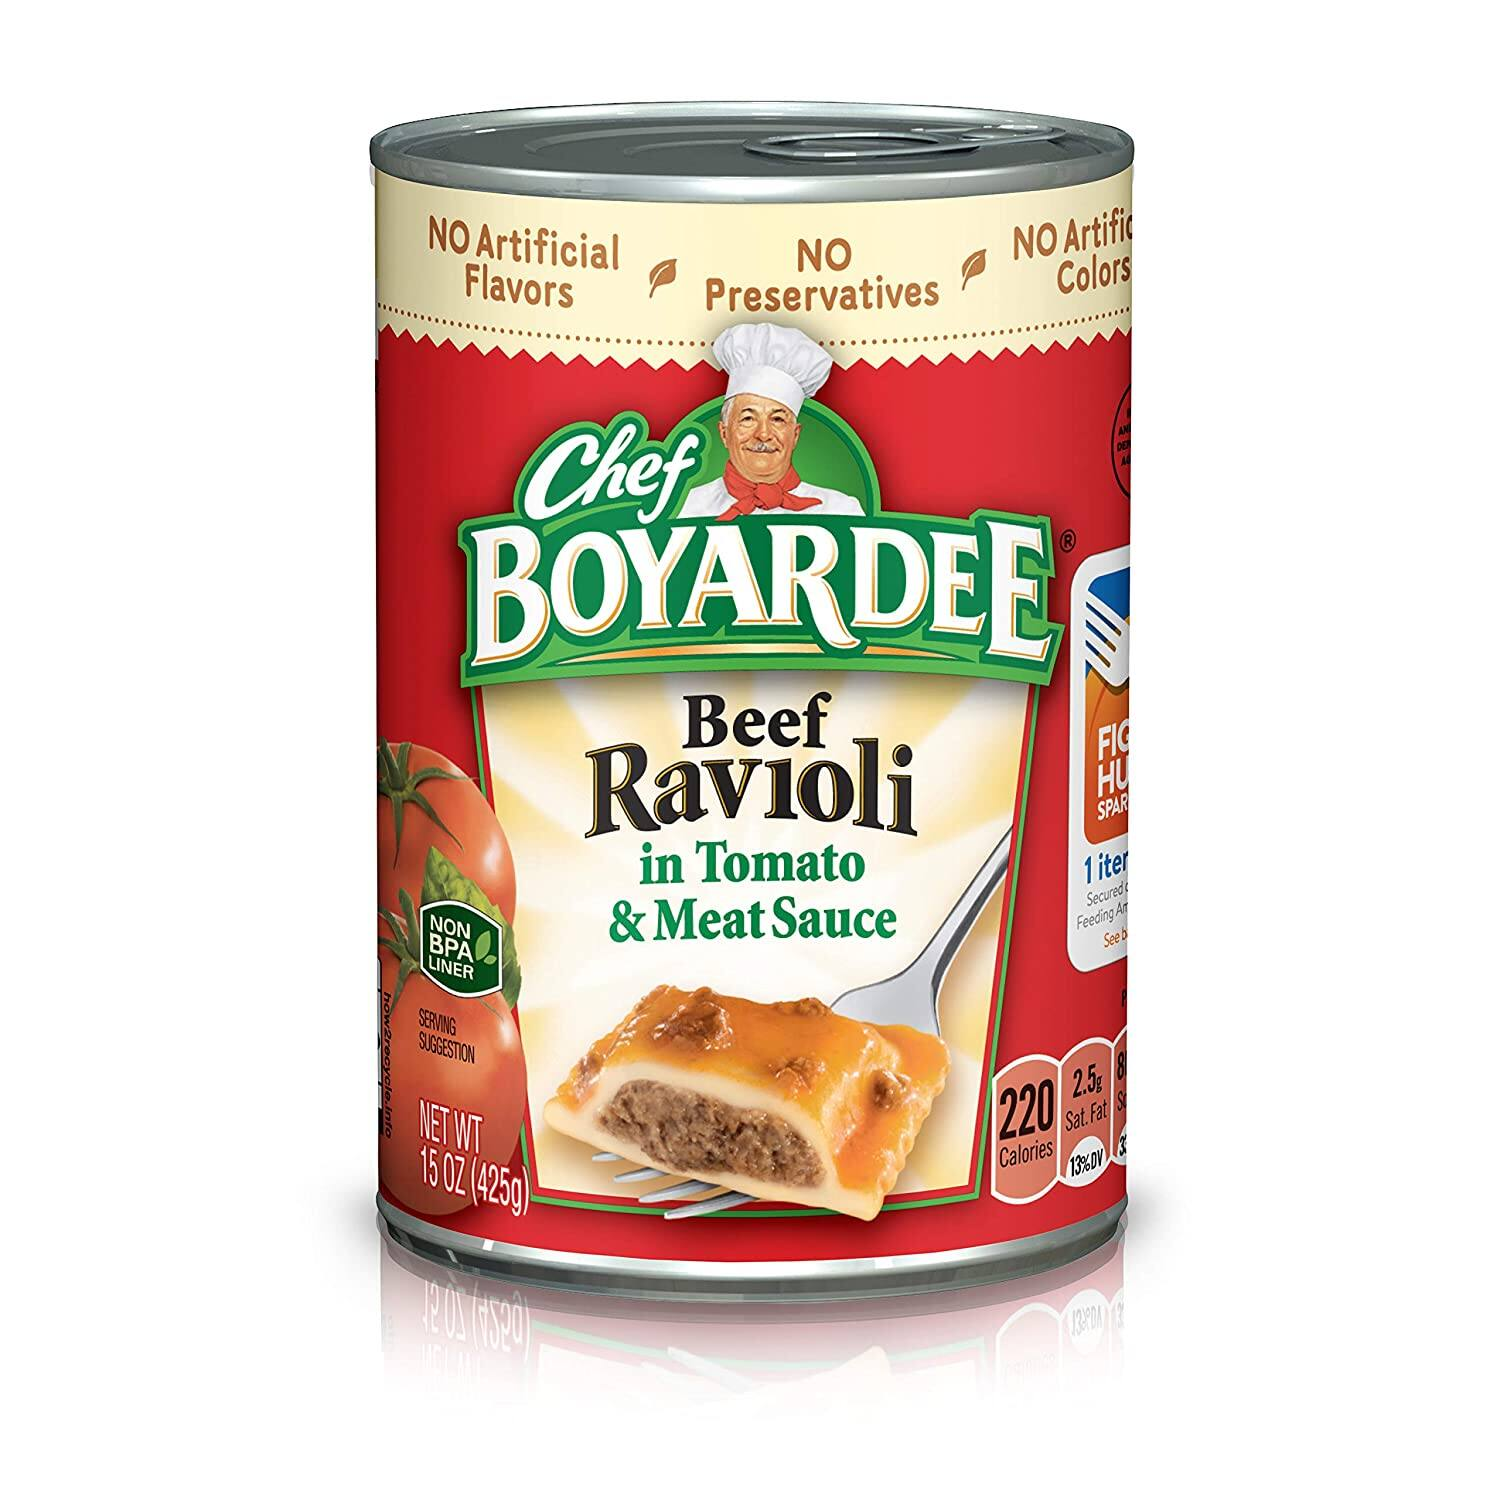 4-Pack 15oz. Chef Boyardee Beef Ravioli in Tomato/Meat Sauce